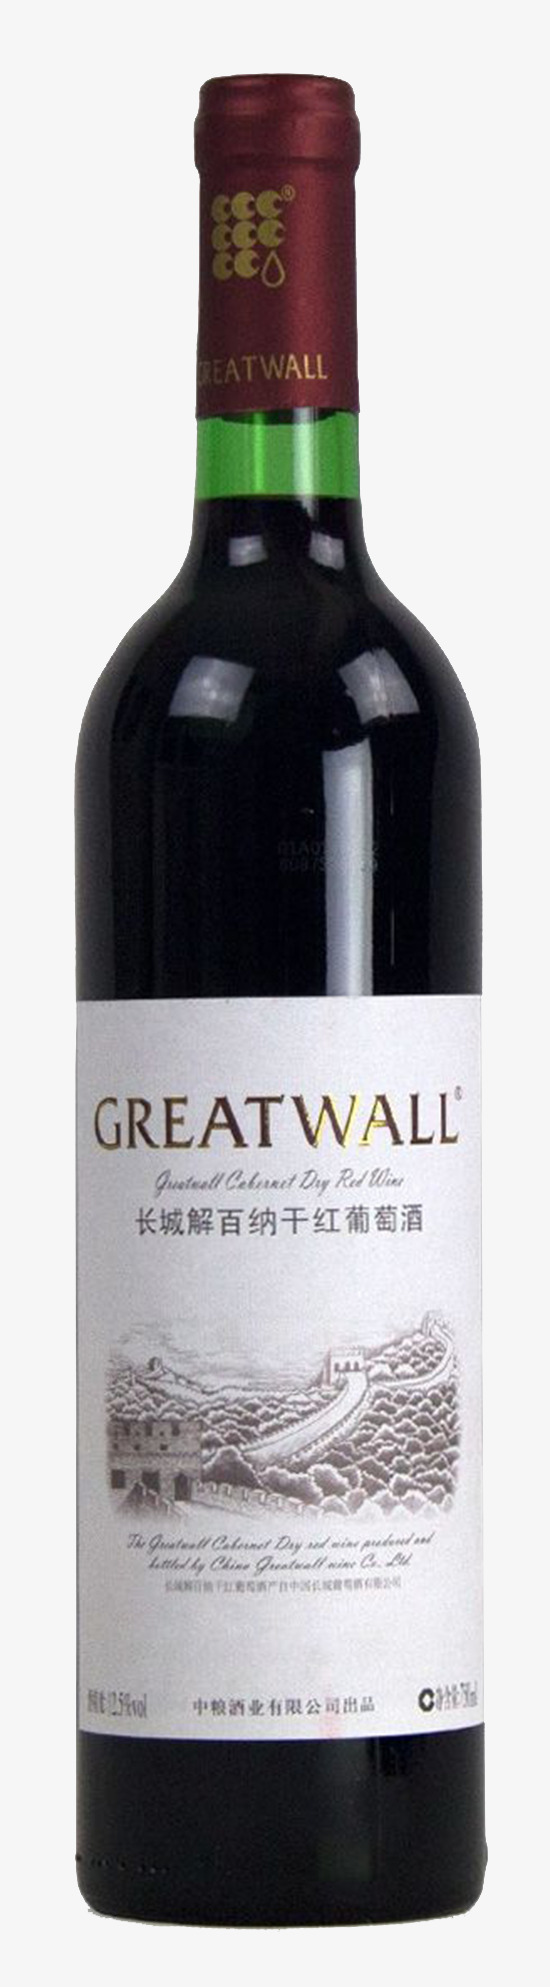 medium resolution of the great wall red wine wine wine clipart wine wine bottle png image